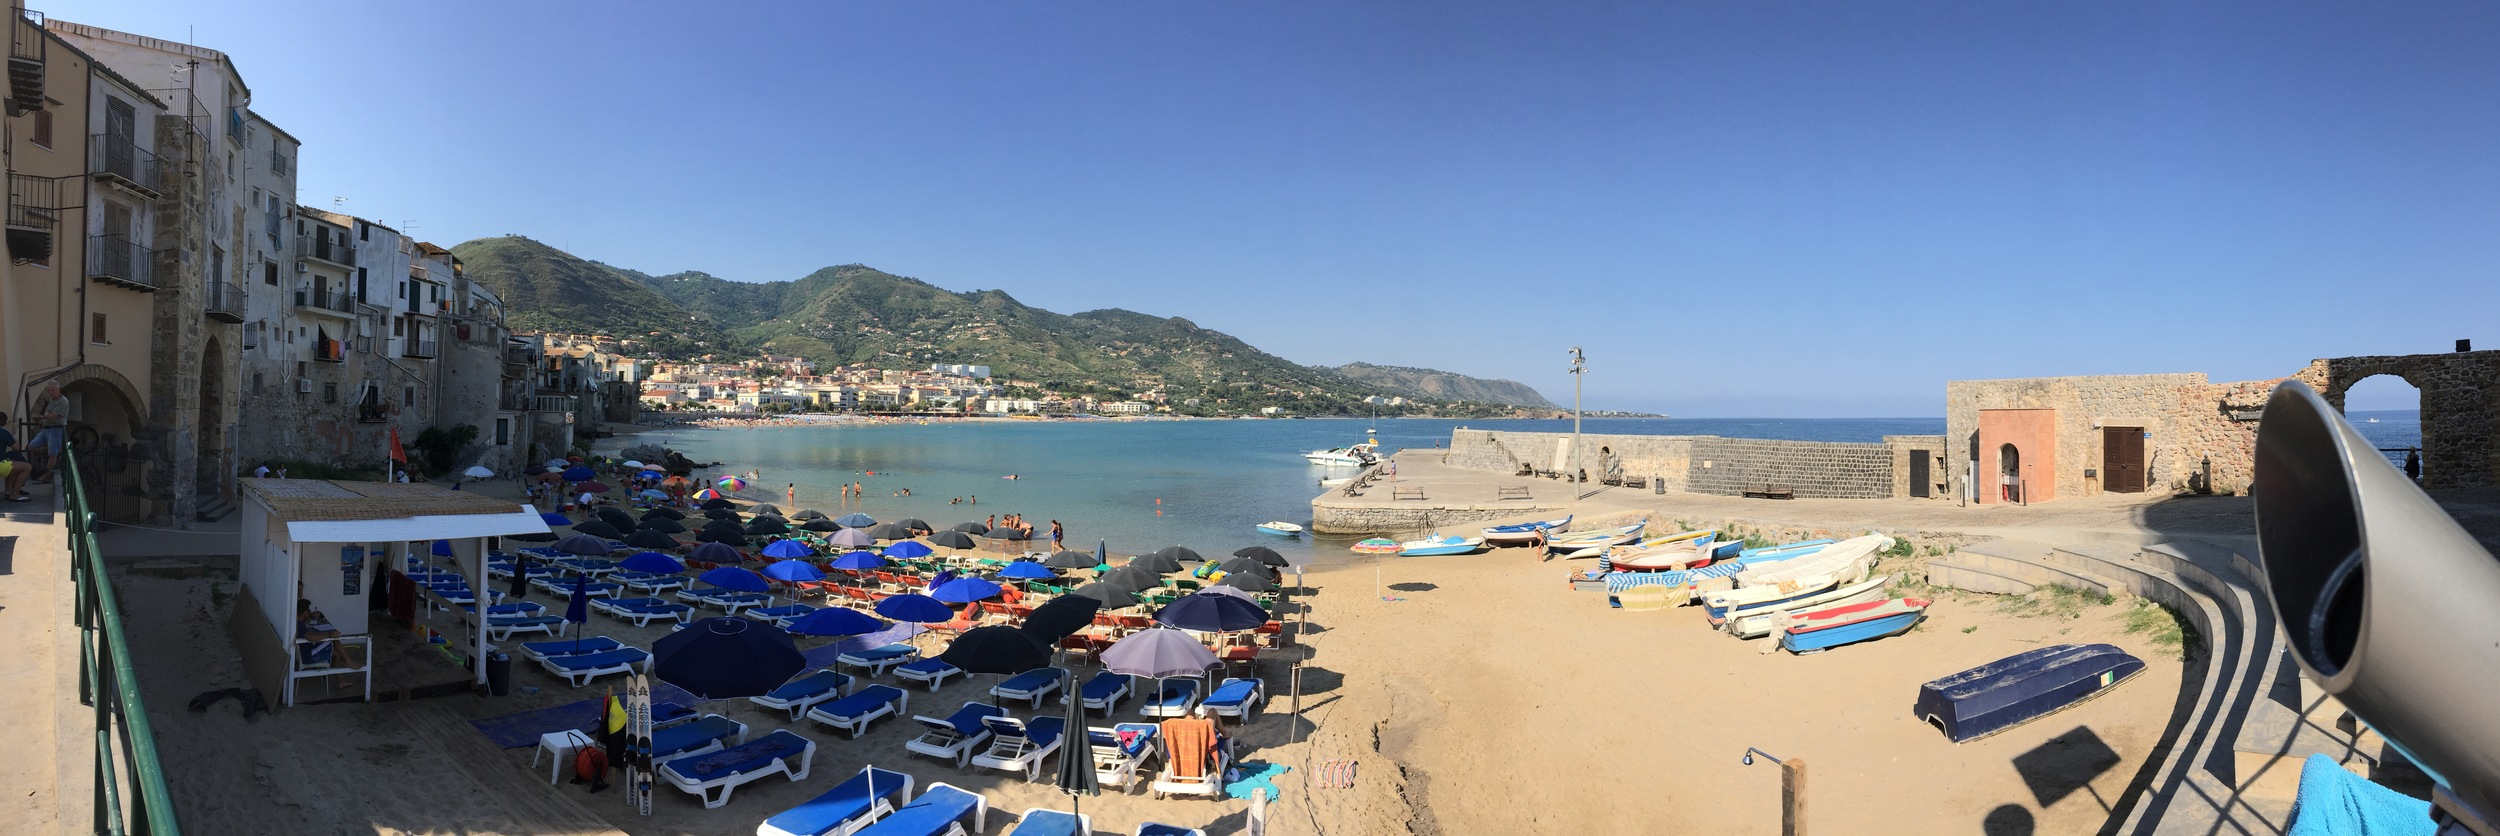 The beach at the city of Cefalu, Sicily